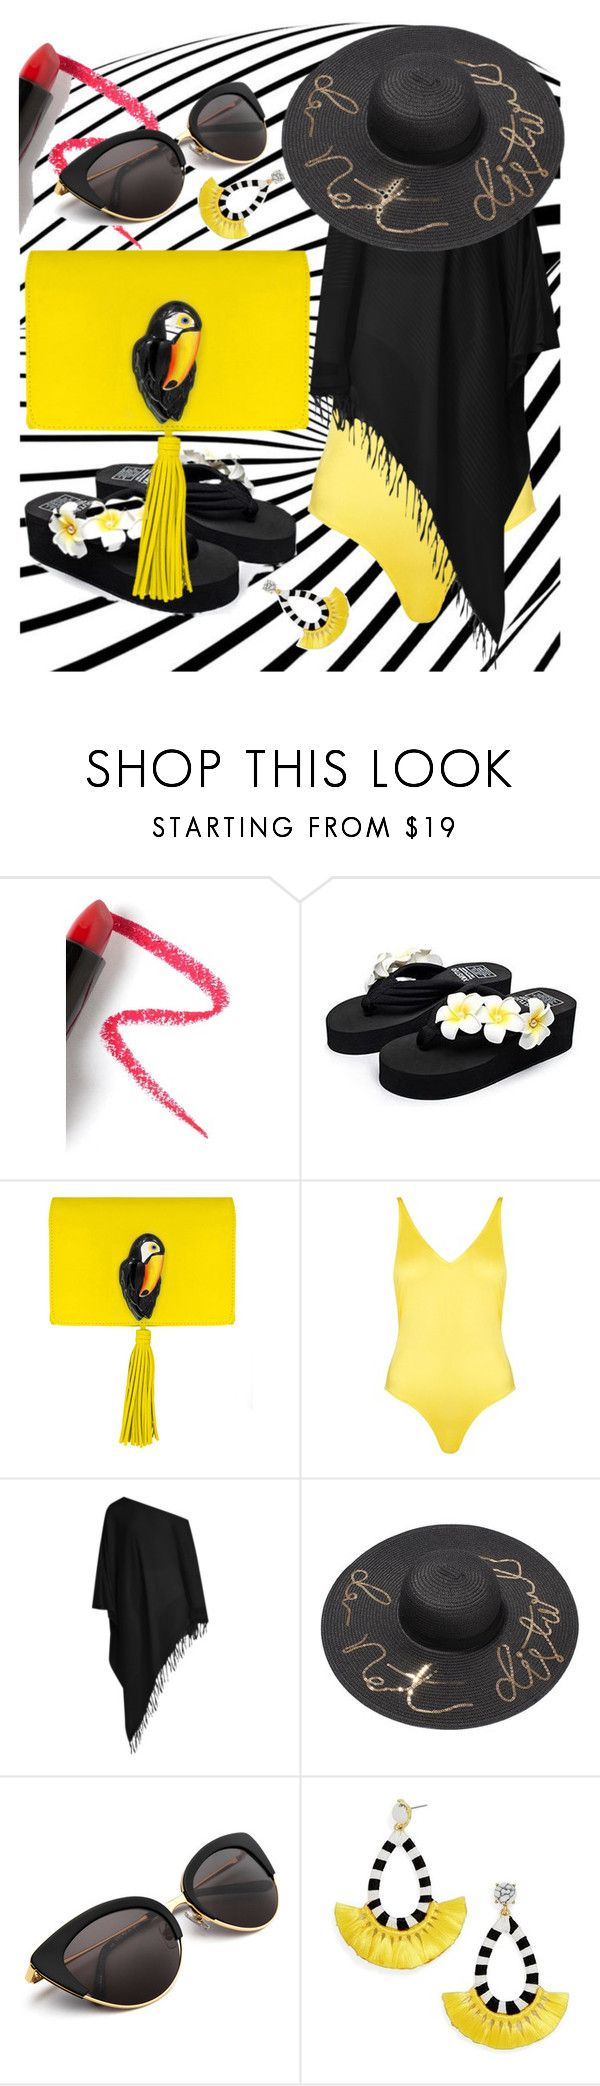 """Tucano"" by cinderella-slipper ❤ liked on Polyvore featuring Lapcos, Sunset Hours, Nach Bijoux, Topshop, Su Paris and BaubleBar"